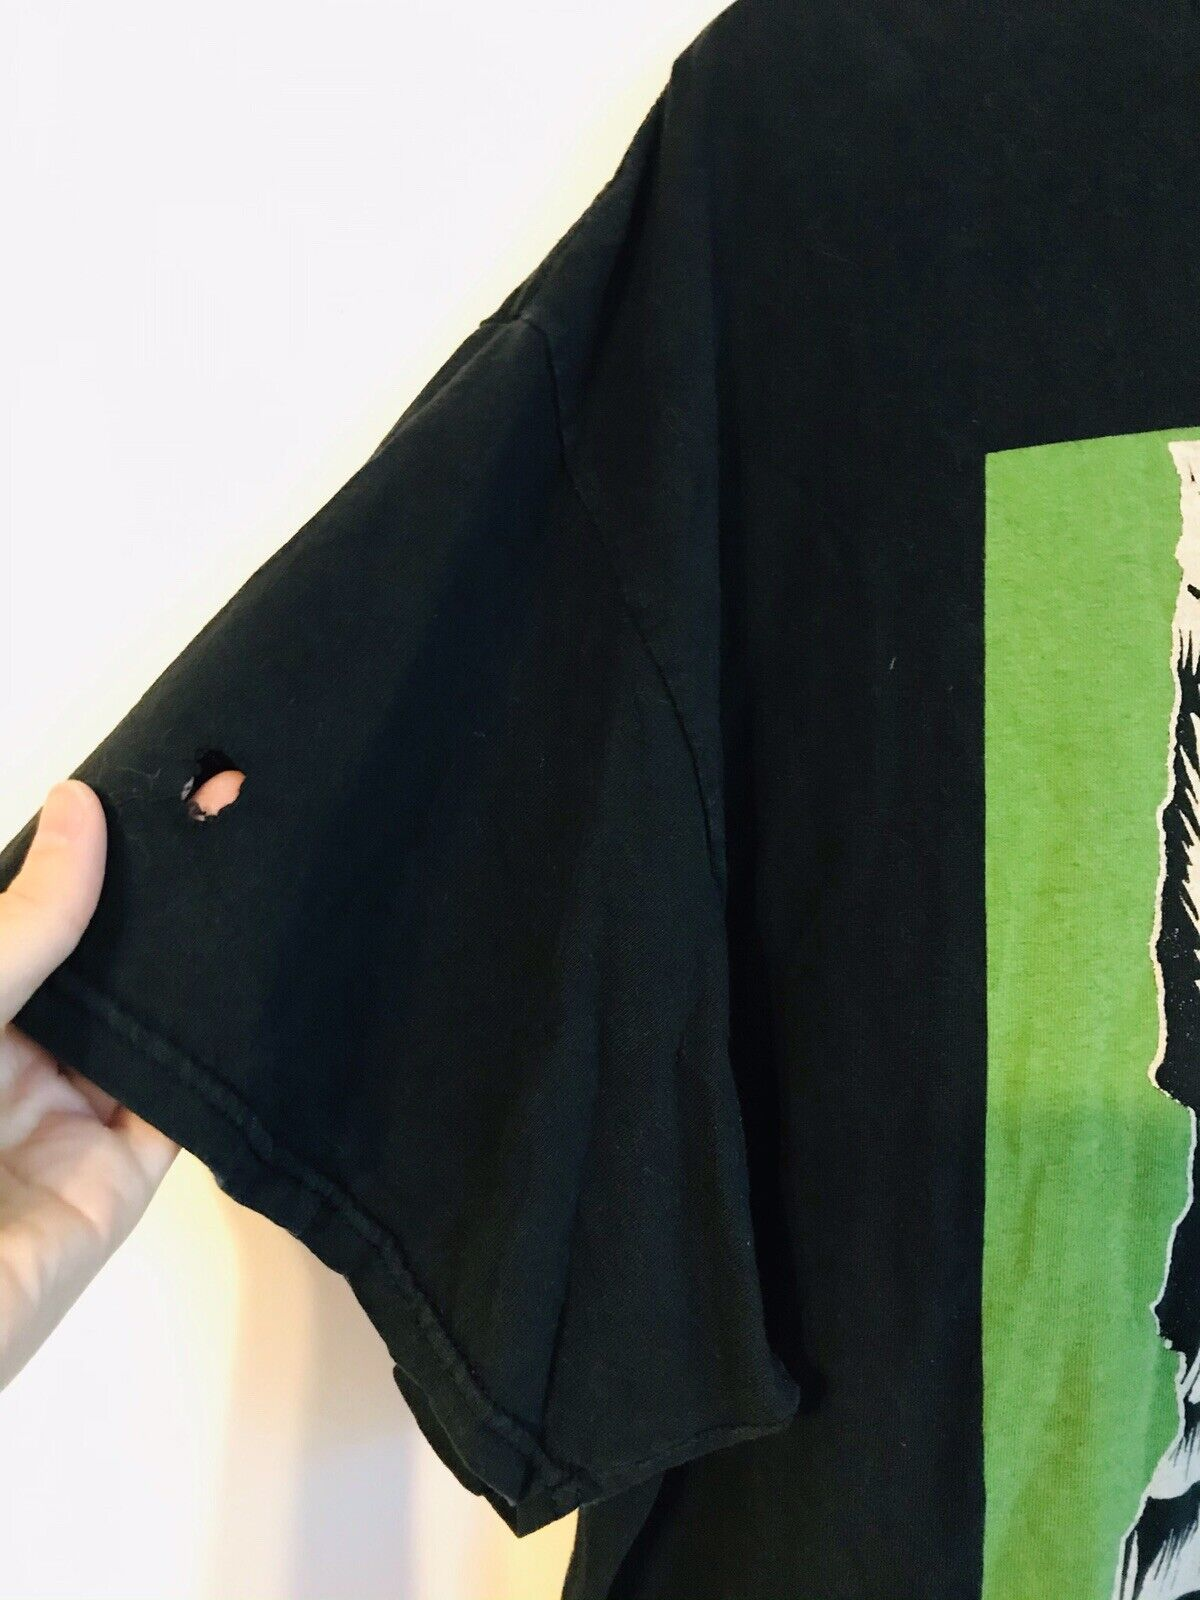 The Clash 3XL Distressed T Shirt not cd - image 2